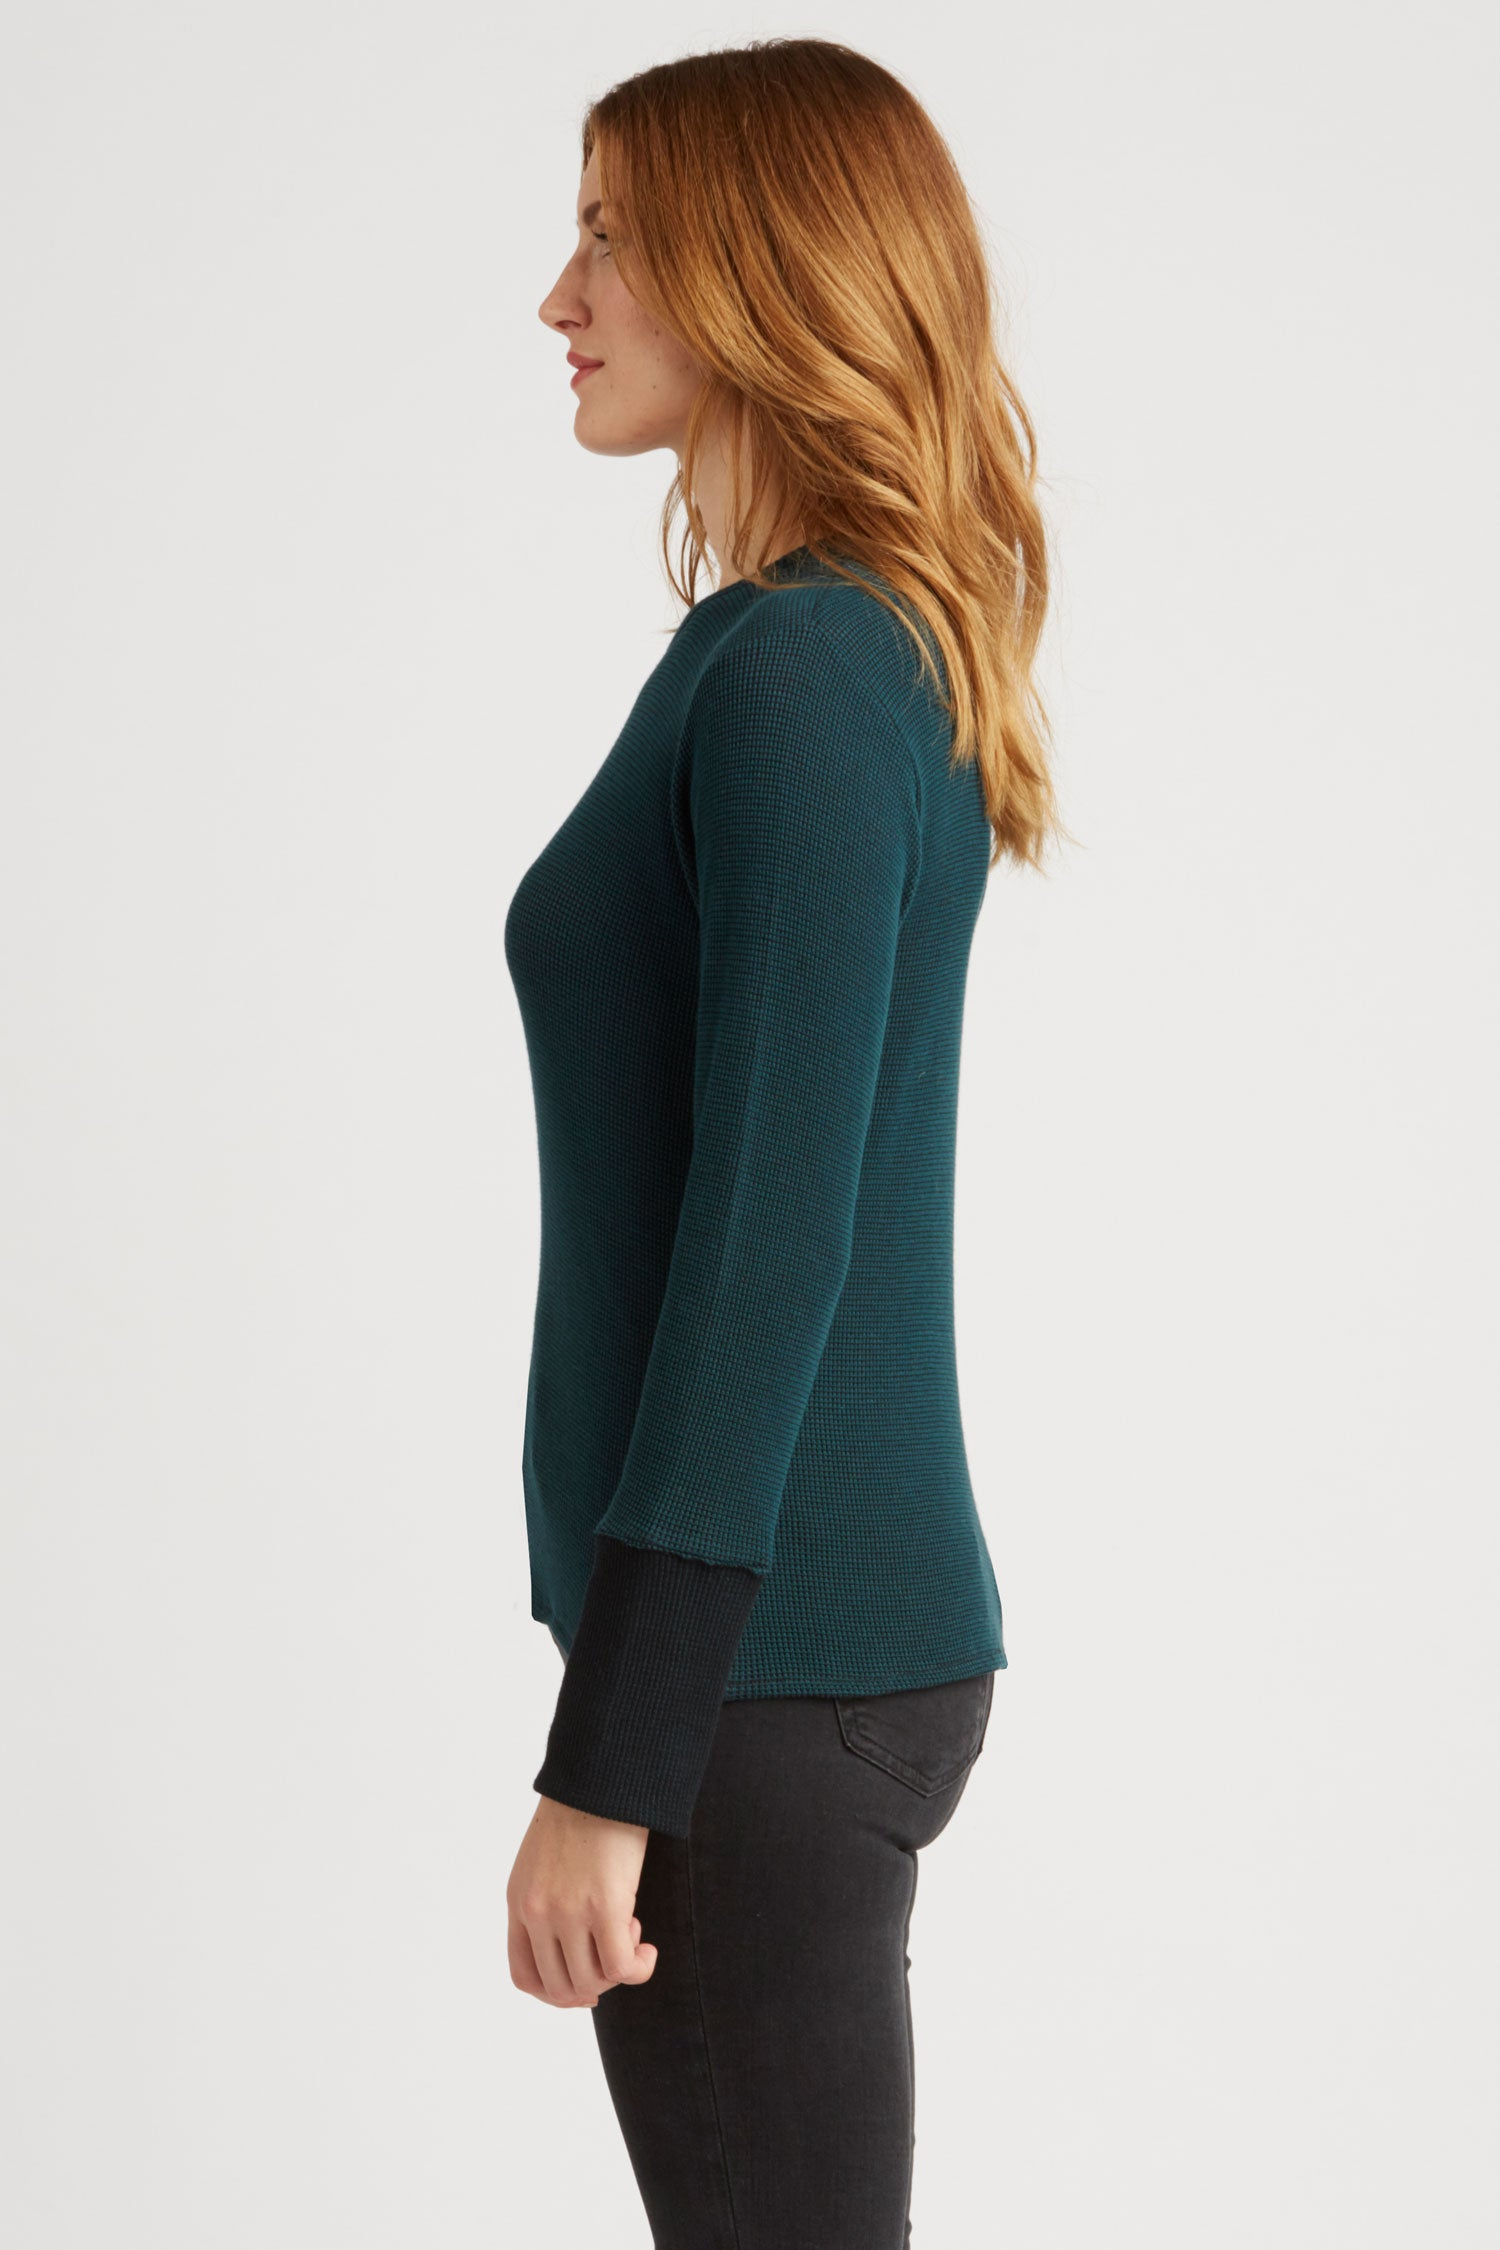 Womens Organic Cotton Clothing | Waffle Long Sleeve Top | Teal